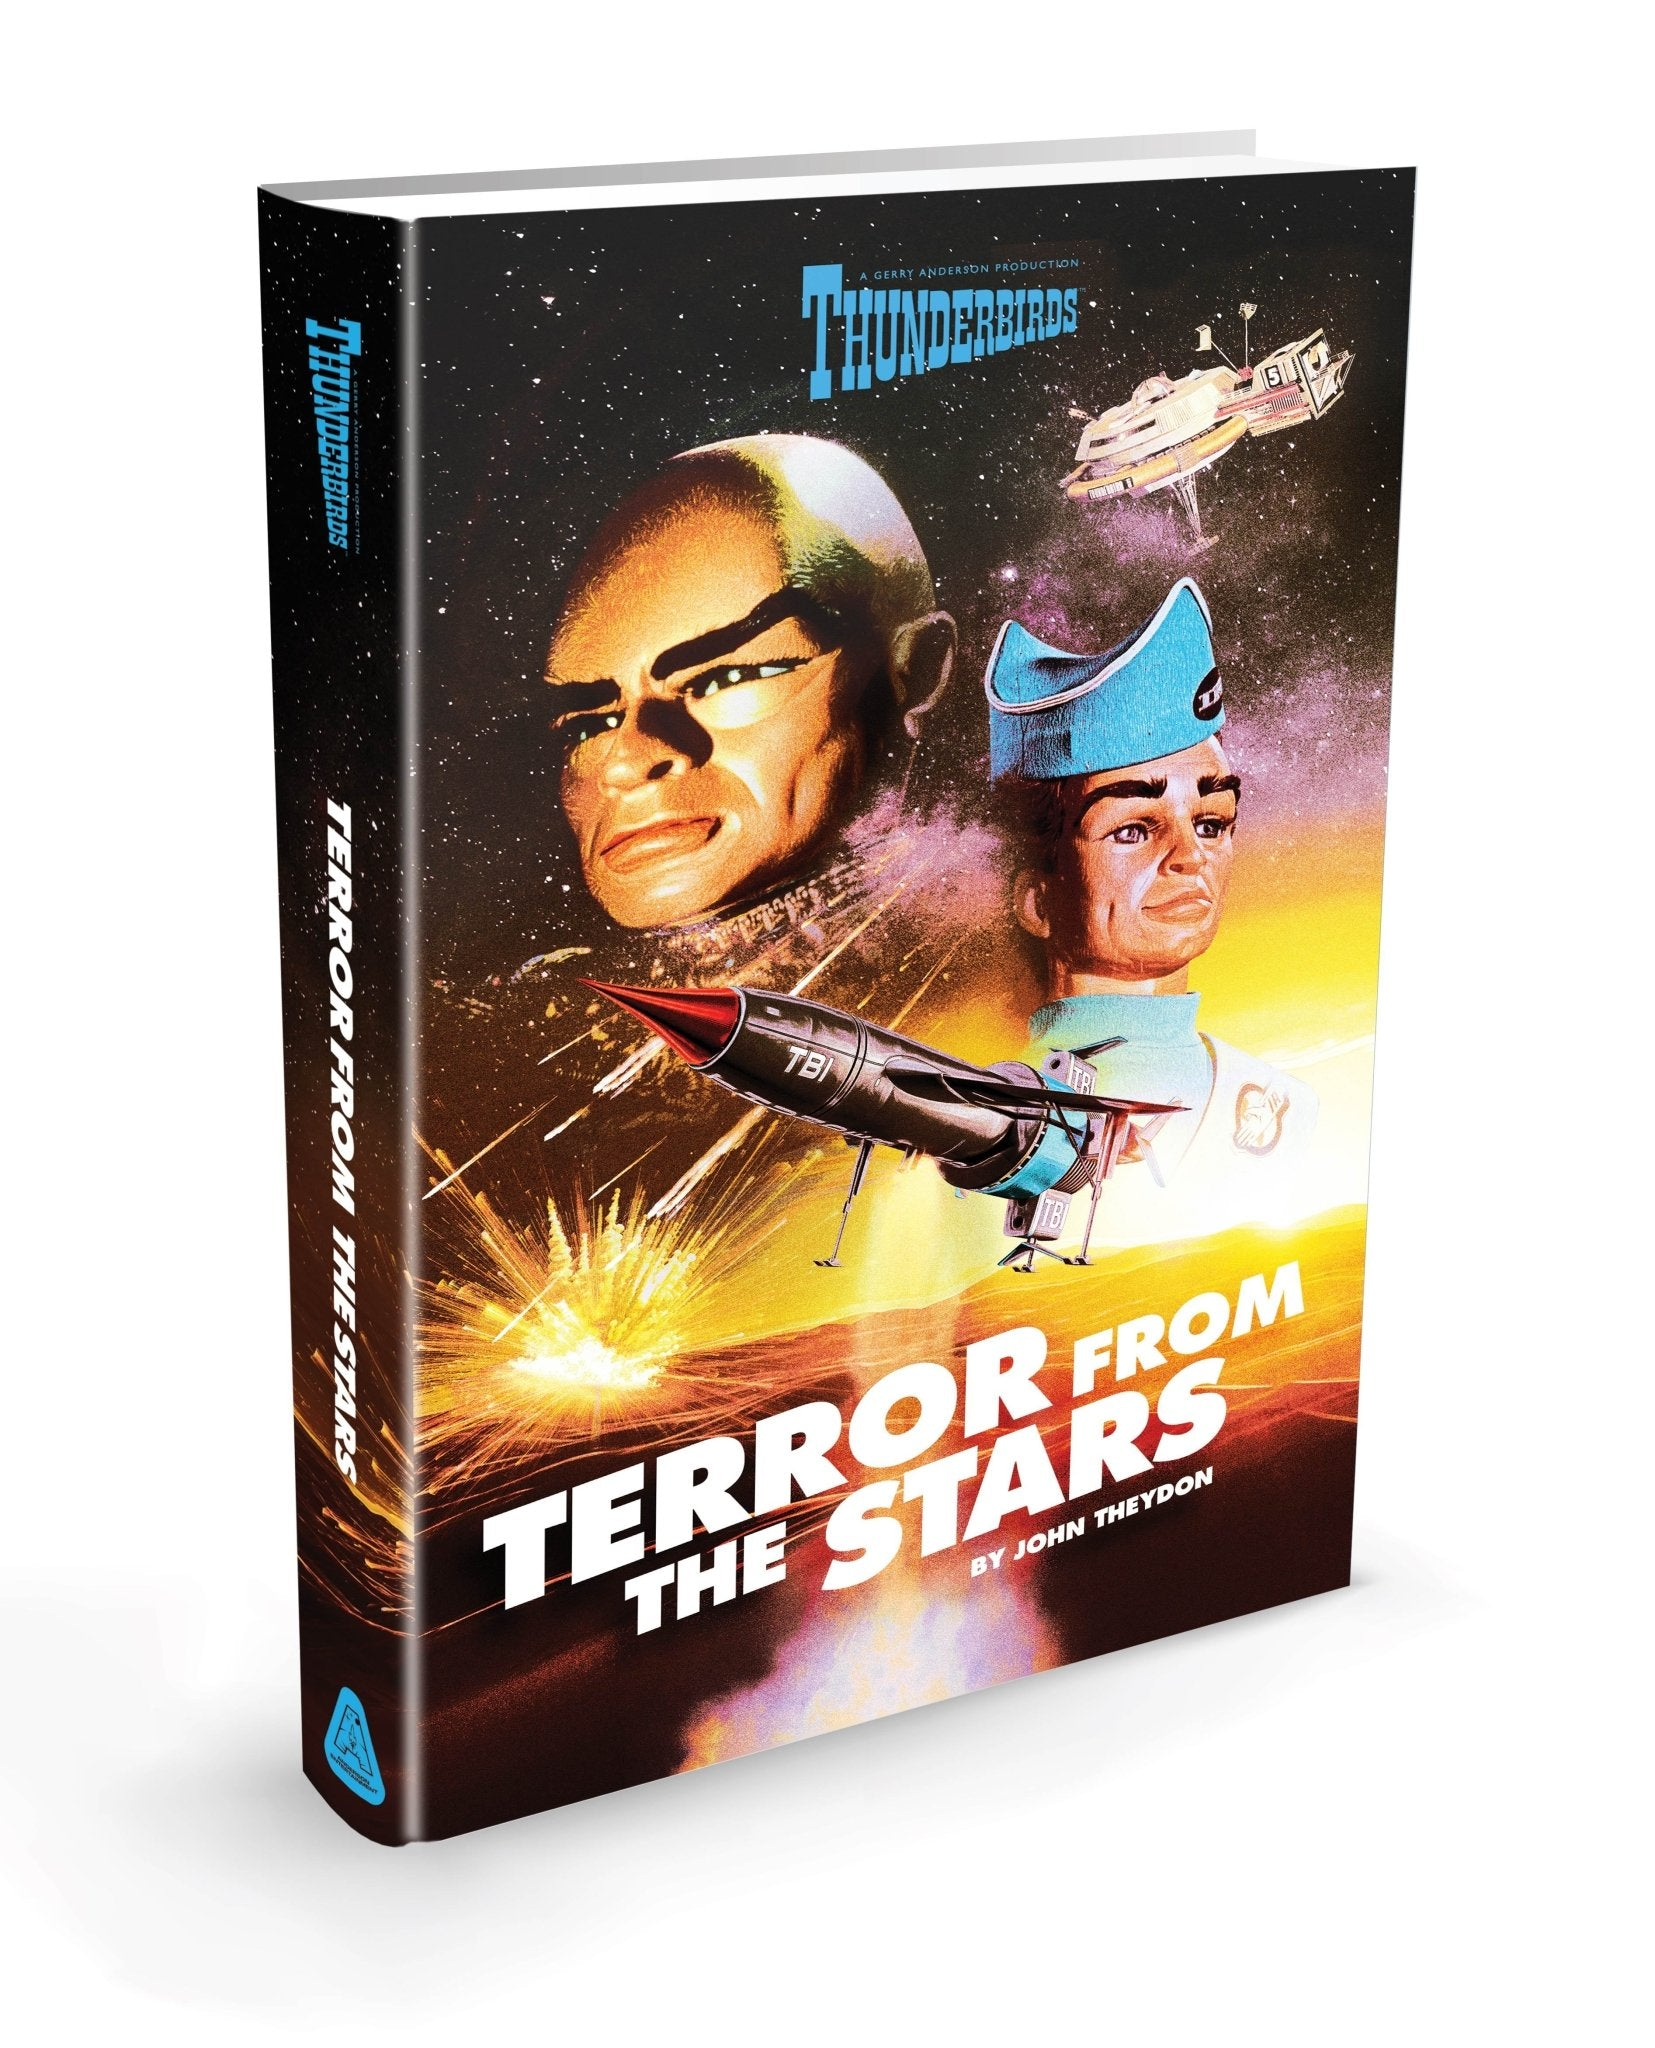 Thunderbirds: Terror from the Stars Hardback Book [Official & Exclusive] - The Gerry Anderson Store